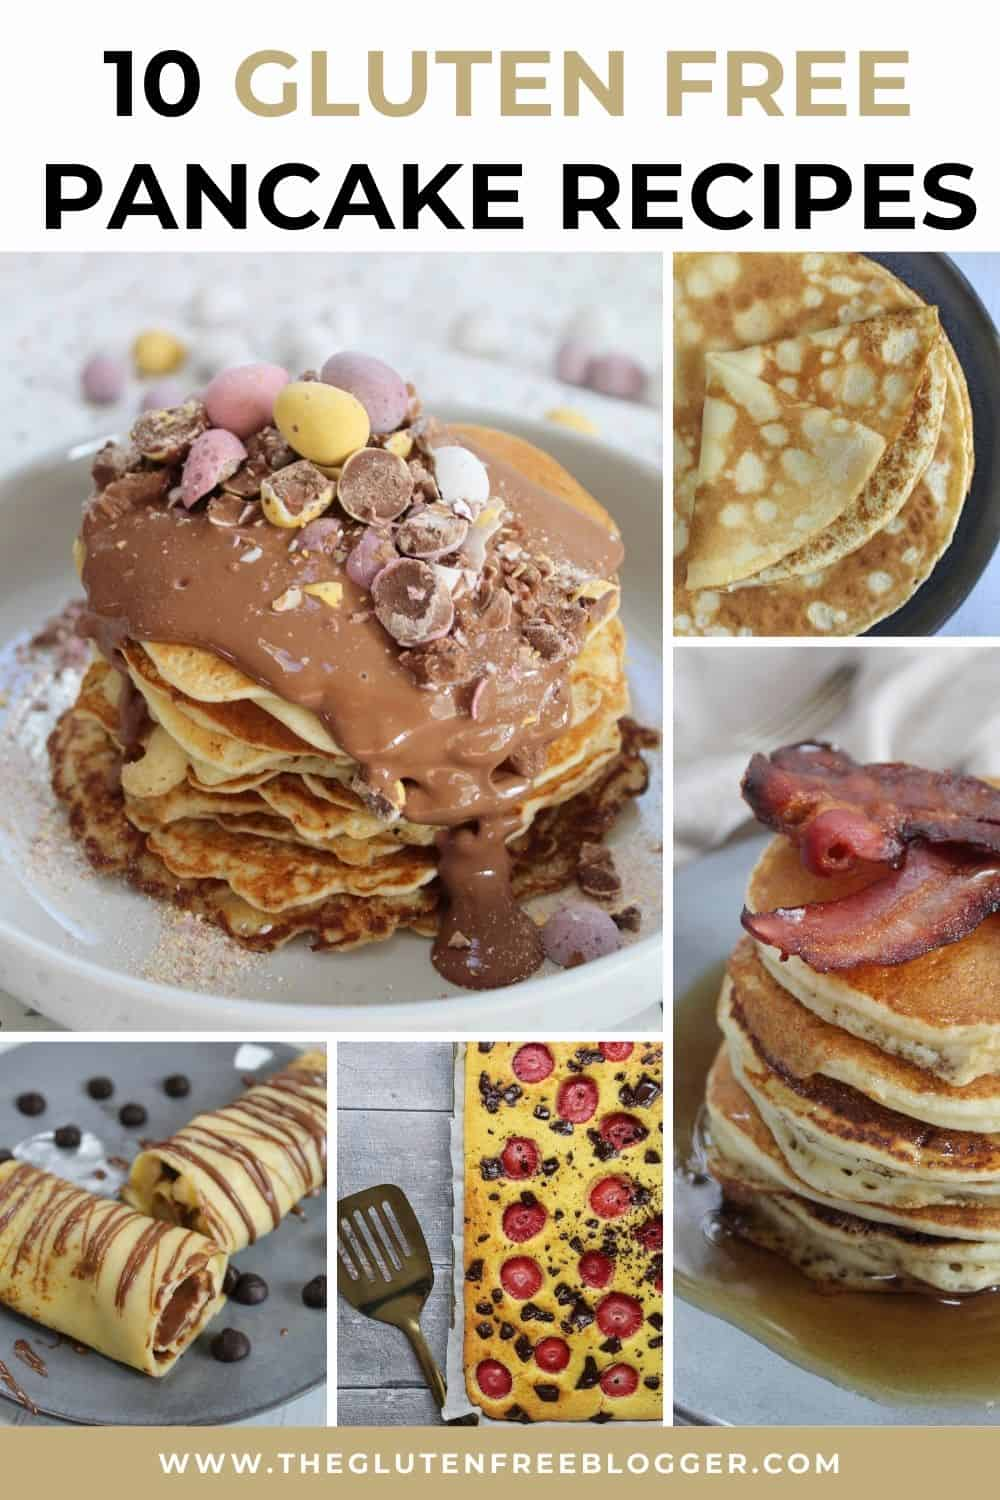 GLUTEN FREE PANCAKE RECIPES FOR PANCAKE DAY (1)